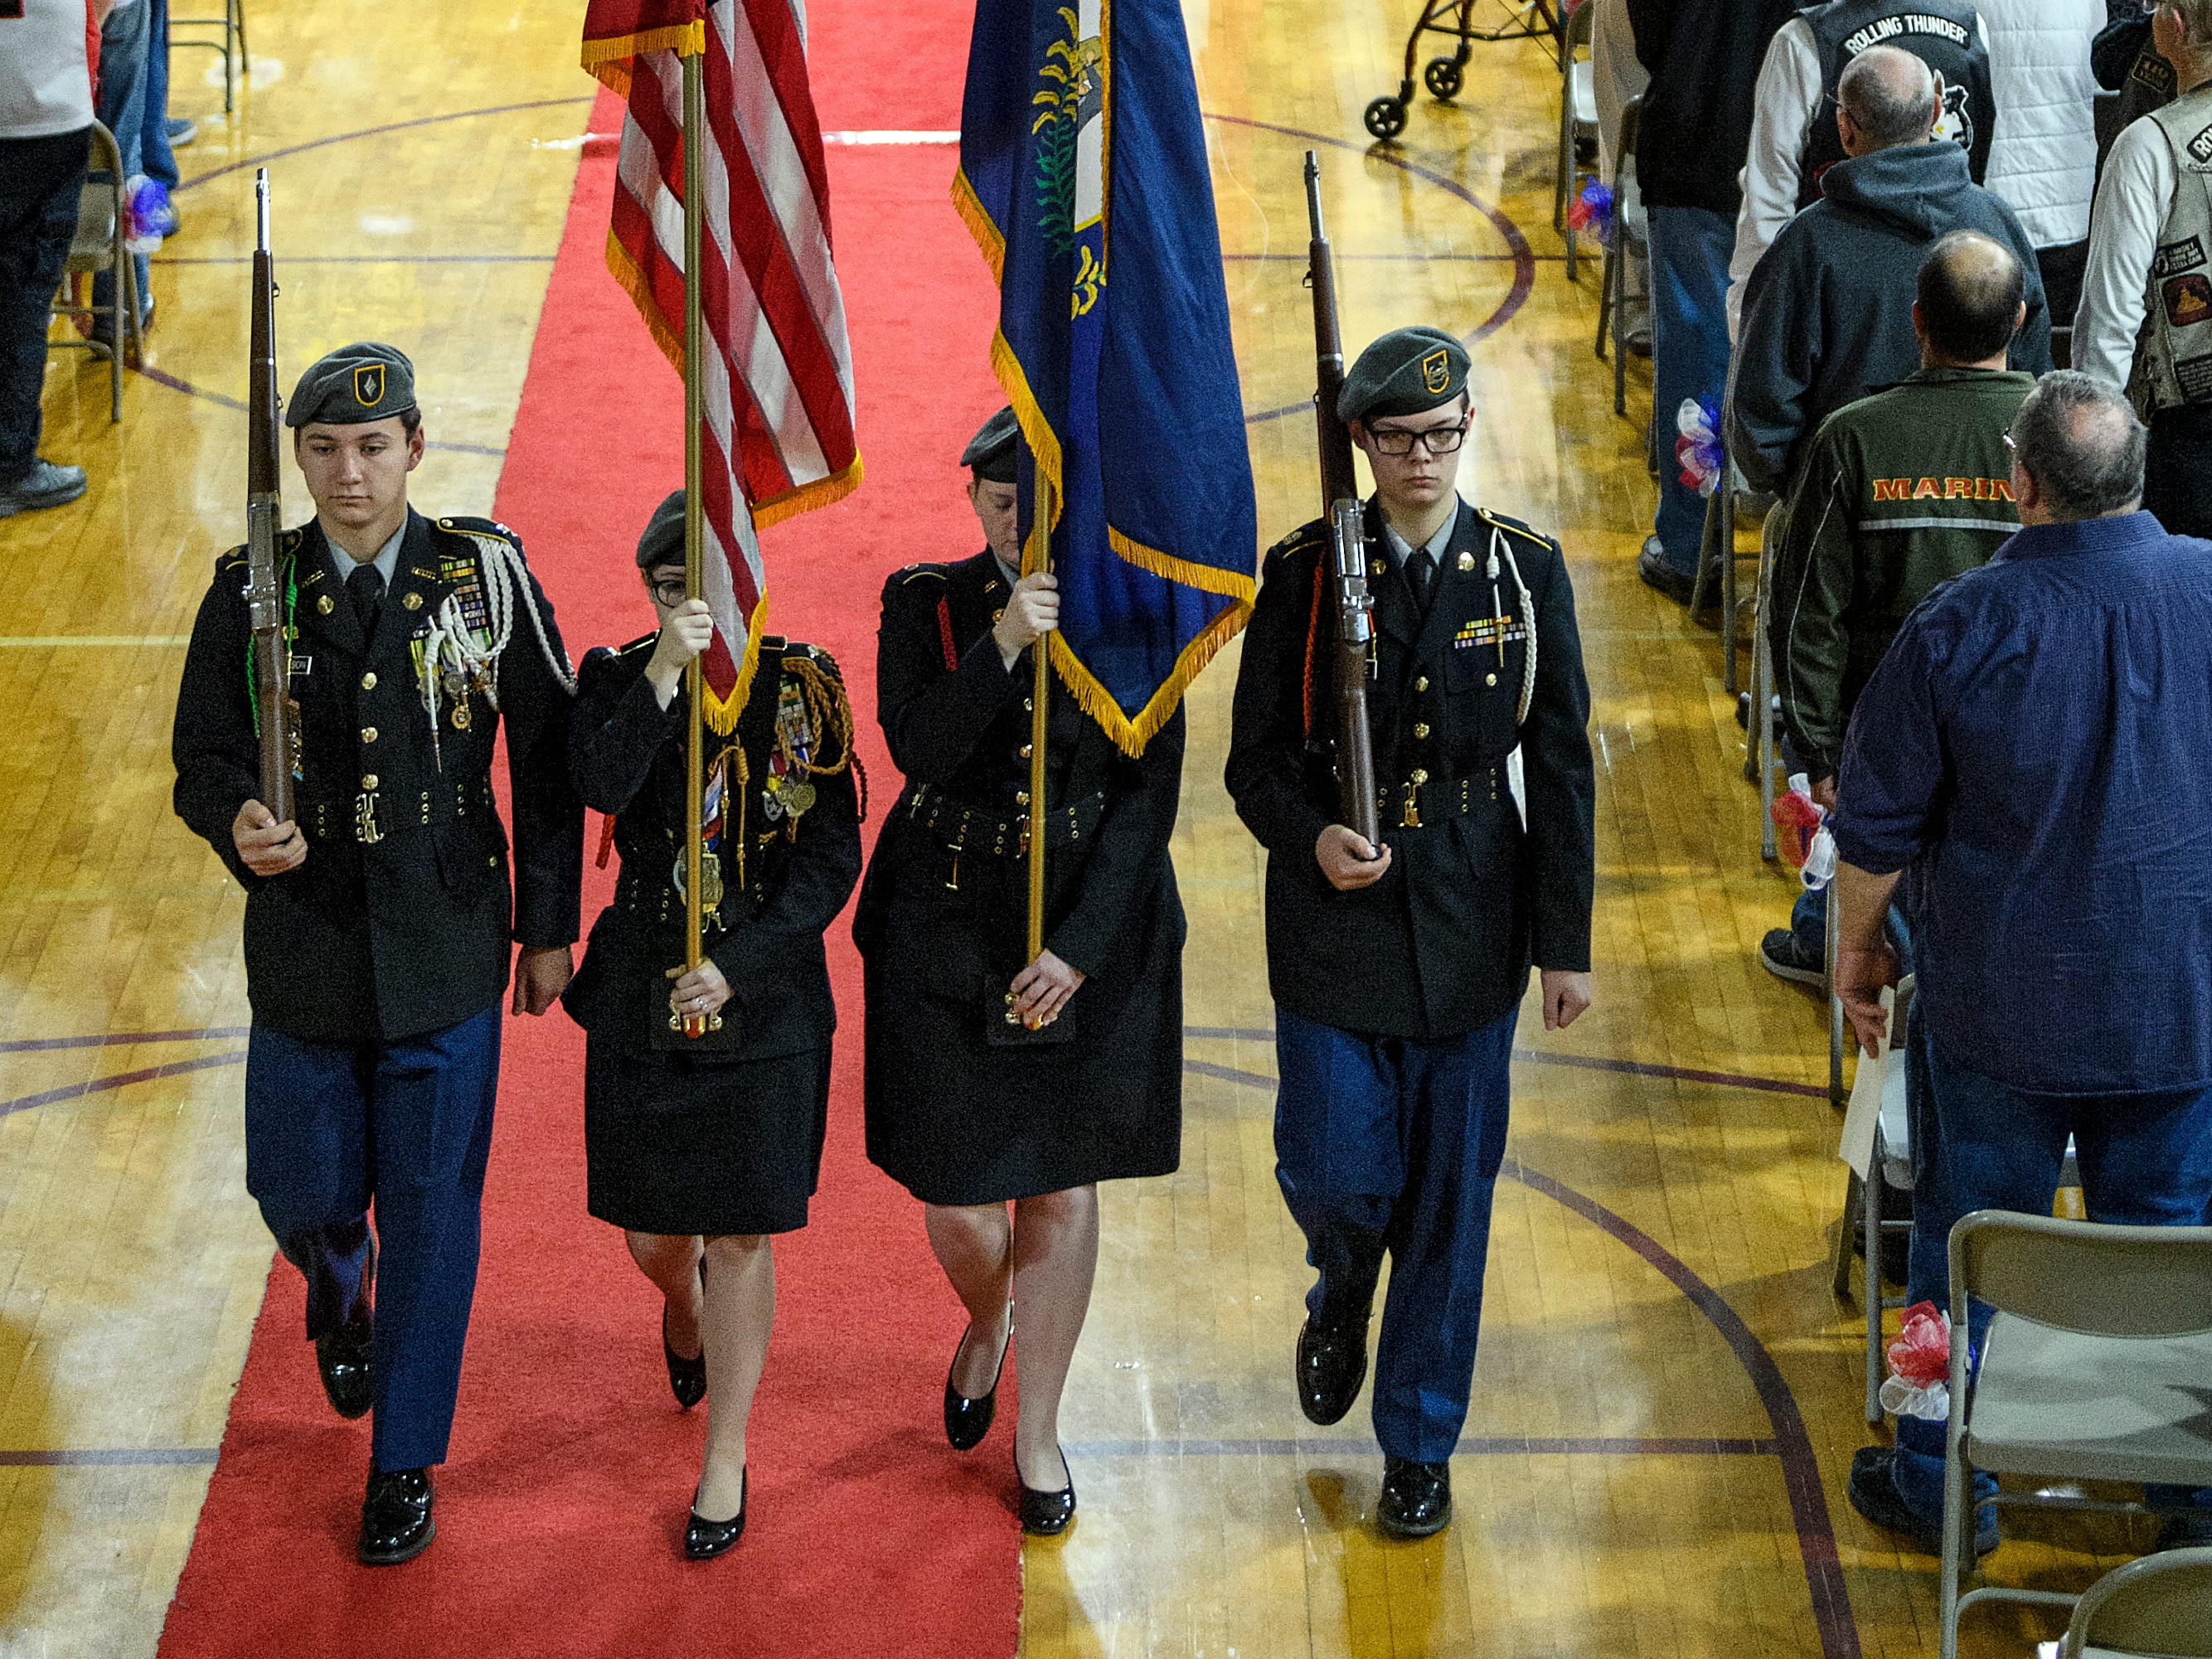 Henderson County Army JROTC Cadet Maj. Noah Wilkerson, from left, Cadet Maj. Kattie Simpson, Cadet Maj. Keleigh Hayden and Cadet Maj. Hayden Wallace retire the colors during the 38th annual Veteran's Day program at South Middle School in Henderson, Ky., Monday, Nov. 12, 2018.